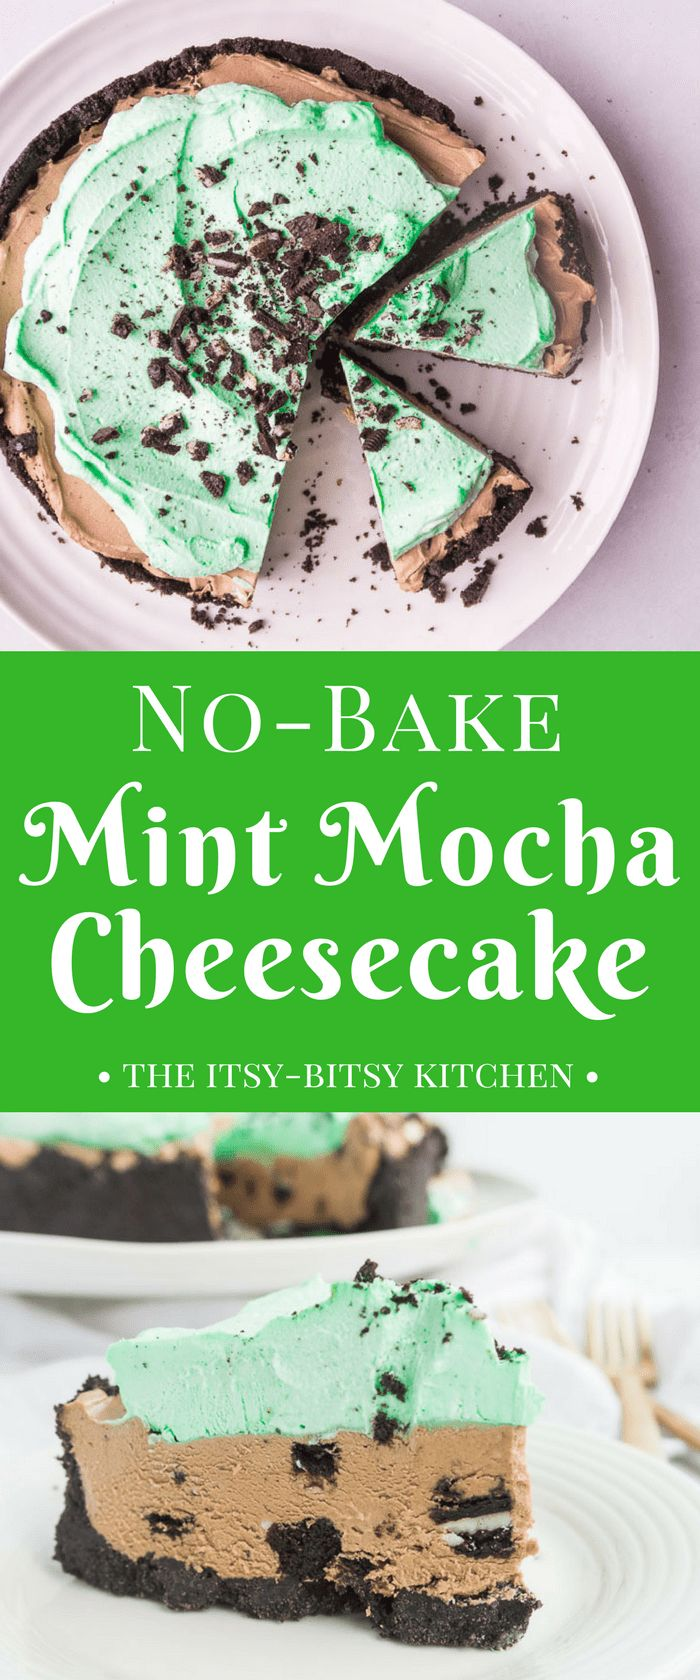 This easy no-bake mint mocha cheesecake features a creamy mint mocha cheesecake filled with Oreo cookies topped with cool and minty whipped cream. It's a delicious and refreshing summer dessert! recipe via itsybitsykitchen.com #nobake #cheesecake #chocolatemint